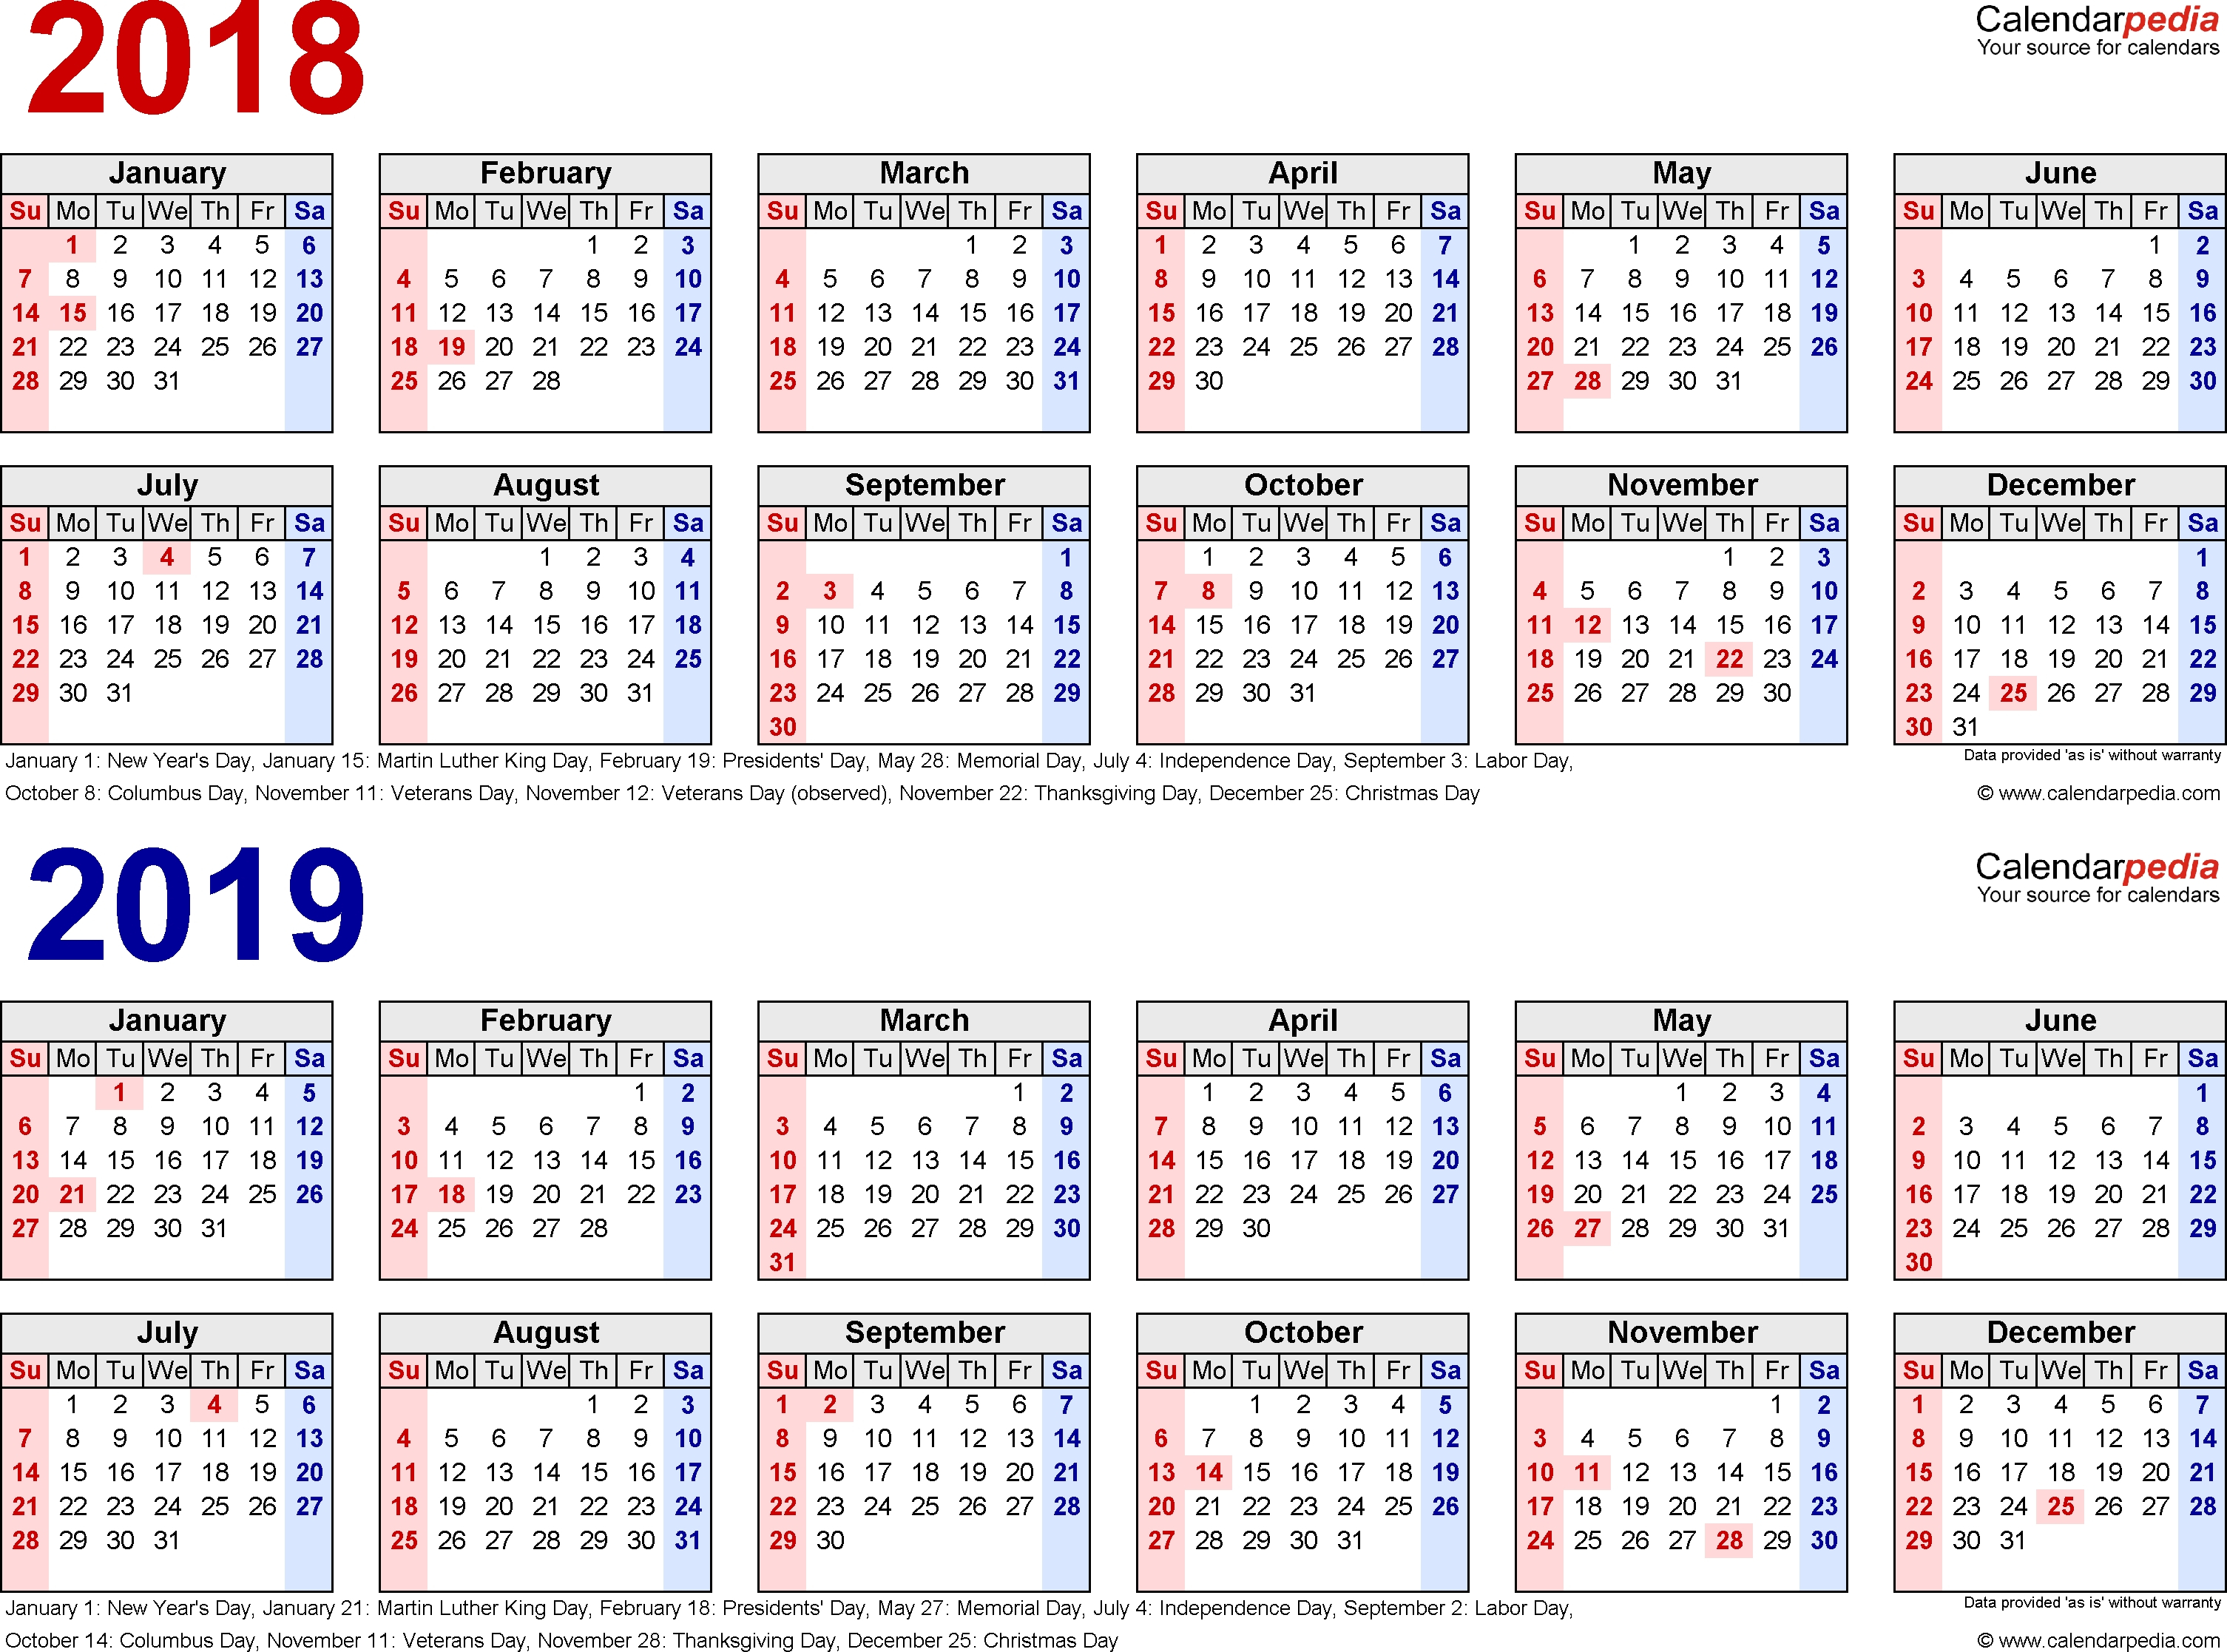 2019-2020 Calendar Financial Week Numbers - Calendar with regard to 2020 Monthly Calinder With Week Numbers